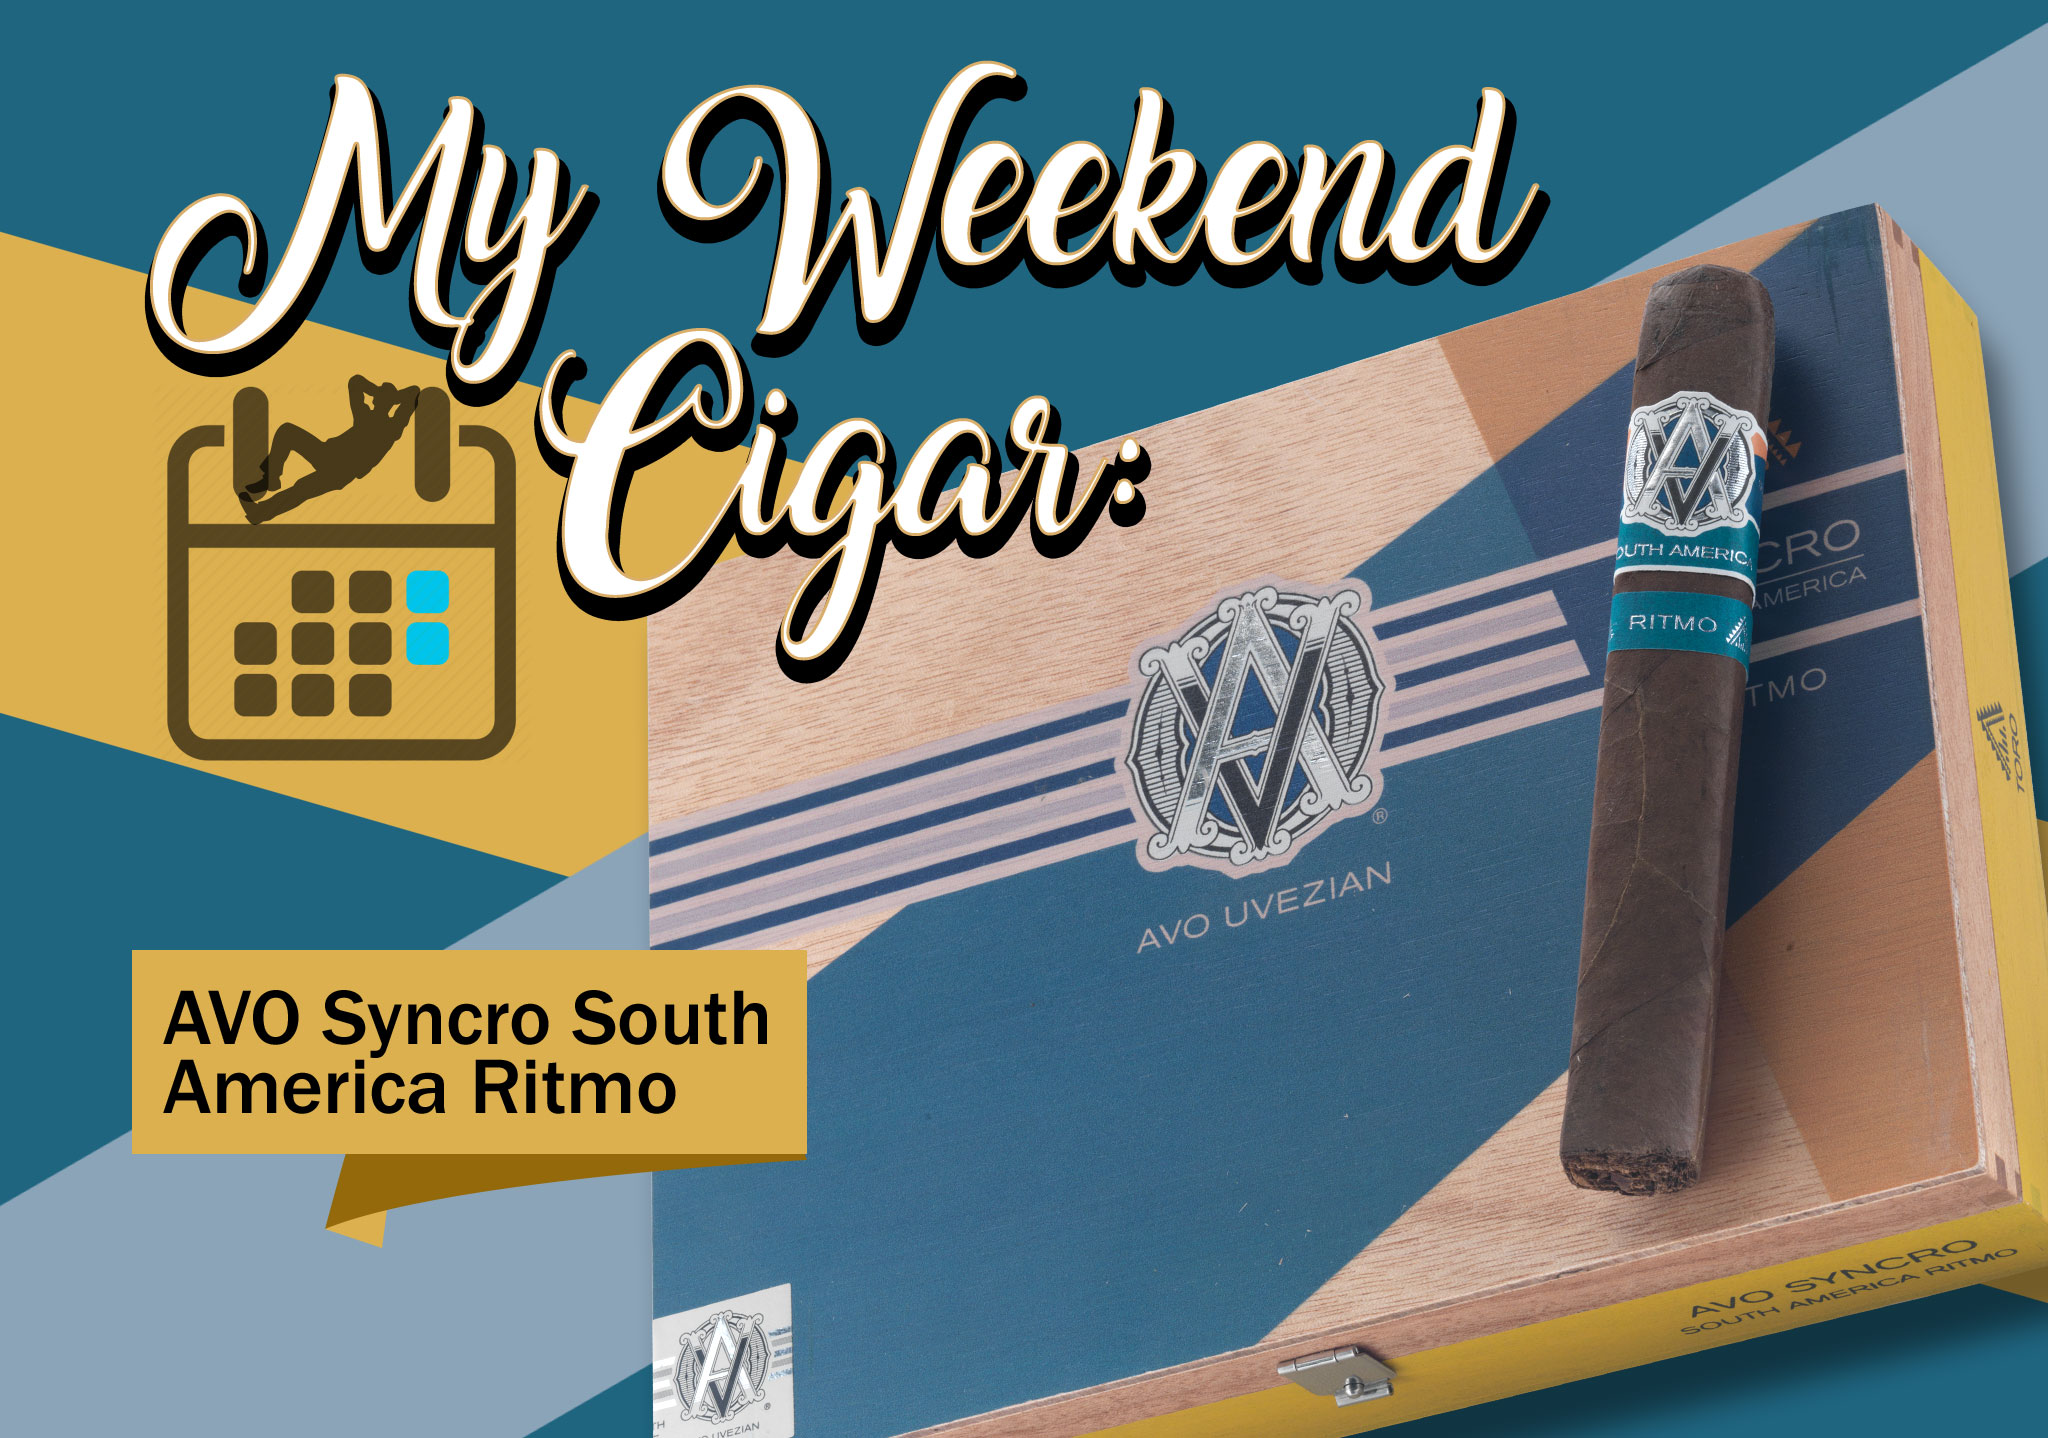 My Weekend Cigar – Oct. 2, 2017: AVO Syncro South America Ritmo